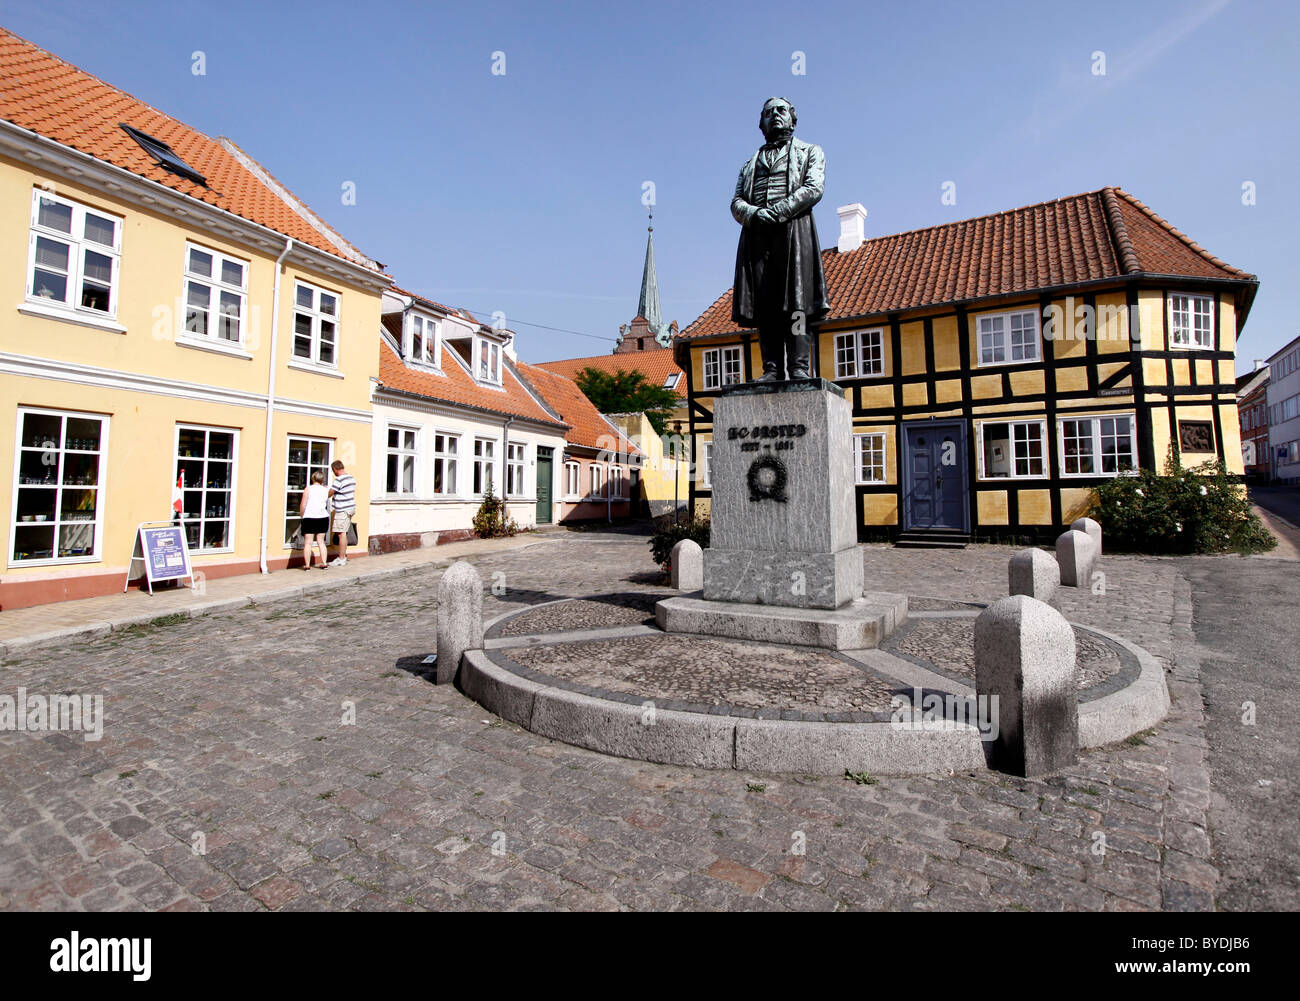 Sqare in Rudkøbing with a statue of the physicist and chemist Hans Christian Ørsted, Langeland, Denmark, - Stock Image